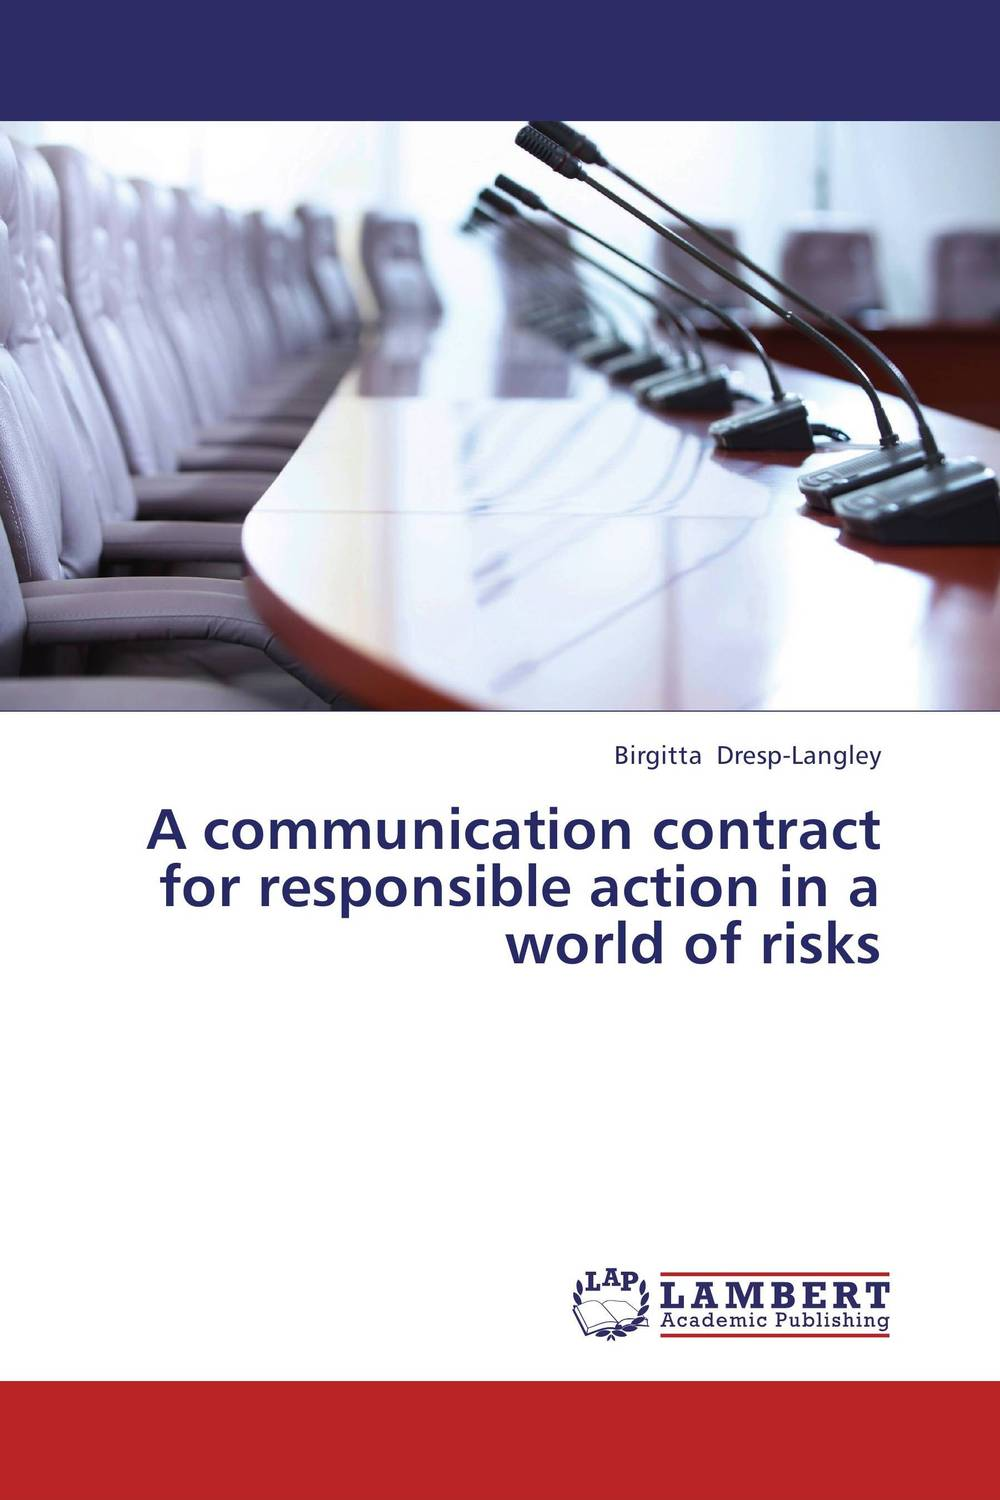 A communication contract for responsible action in a world of risks ethical and responsible management